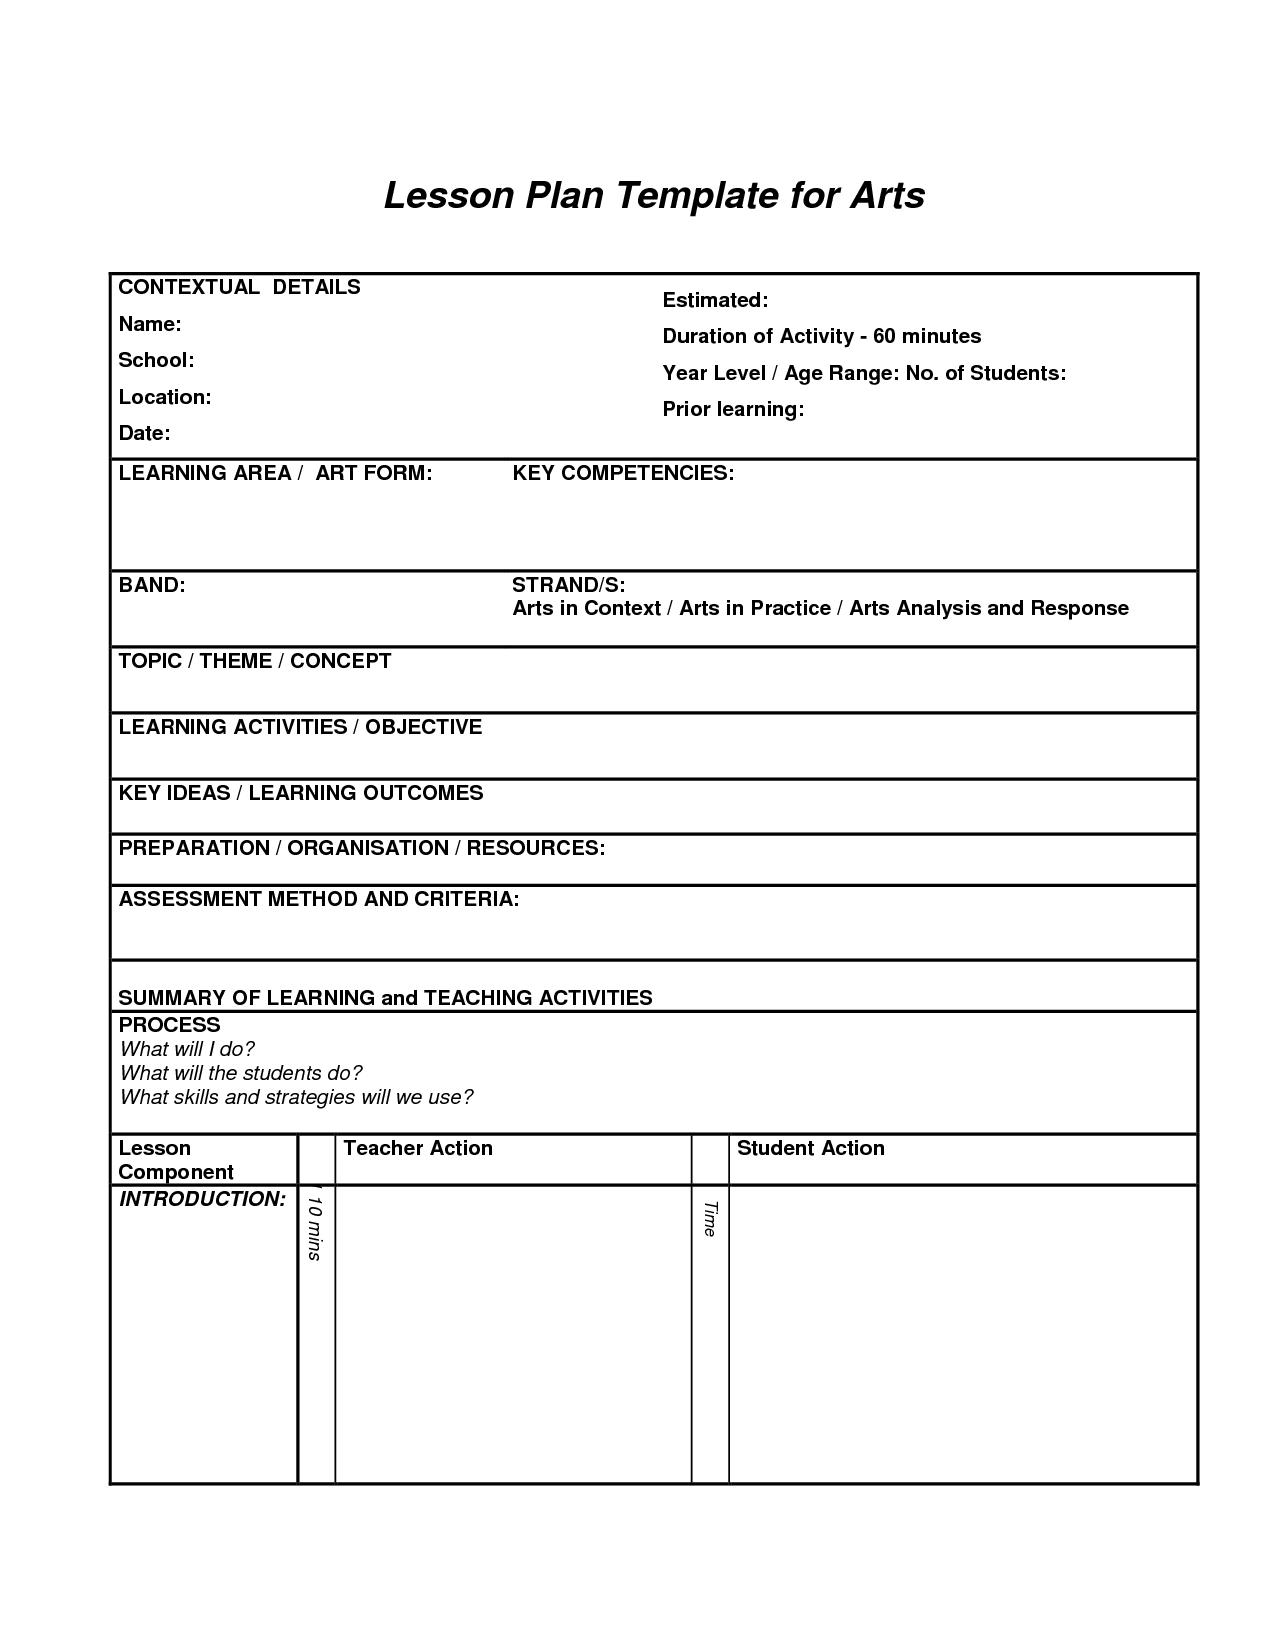 Lesson Plan Template For Arts Teacher Lesson Plans Template Lesson Plan Templates Elementary Lesson Plan Template